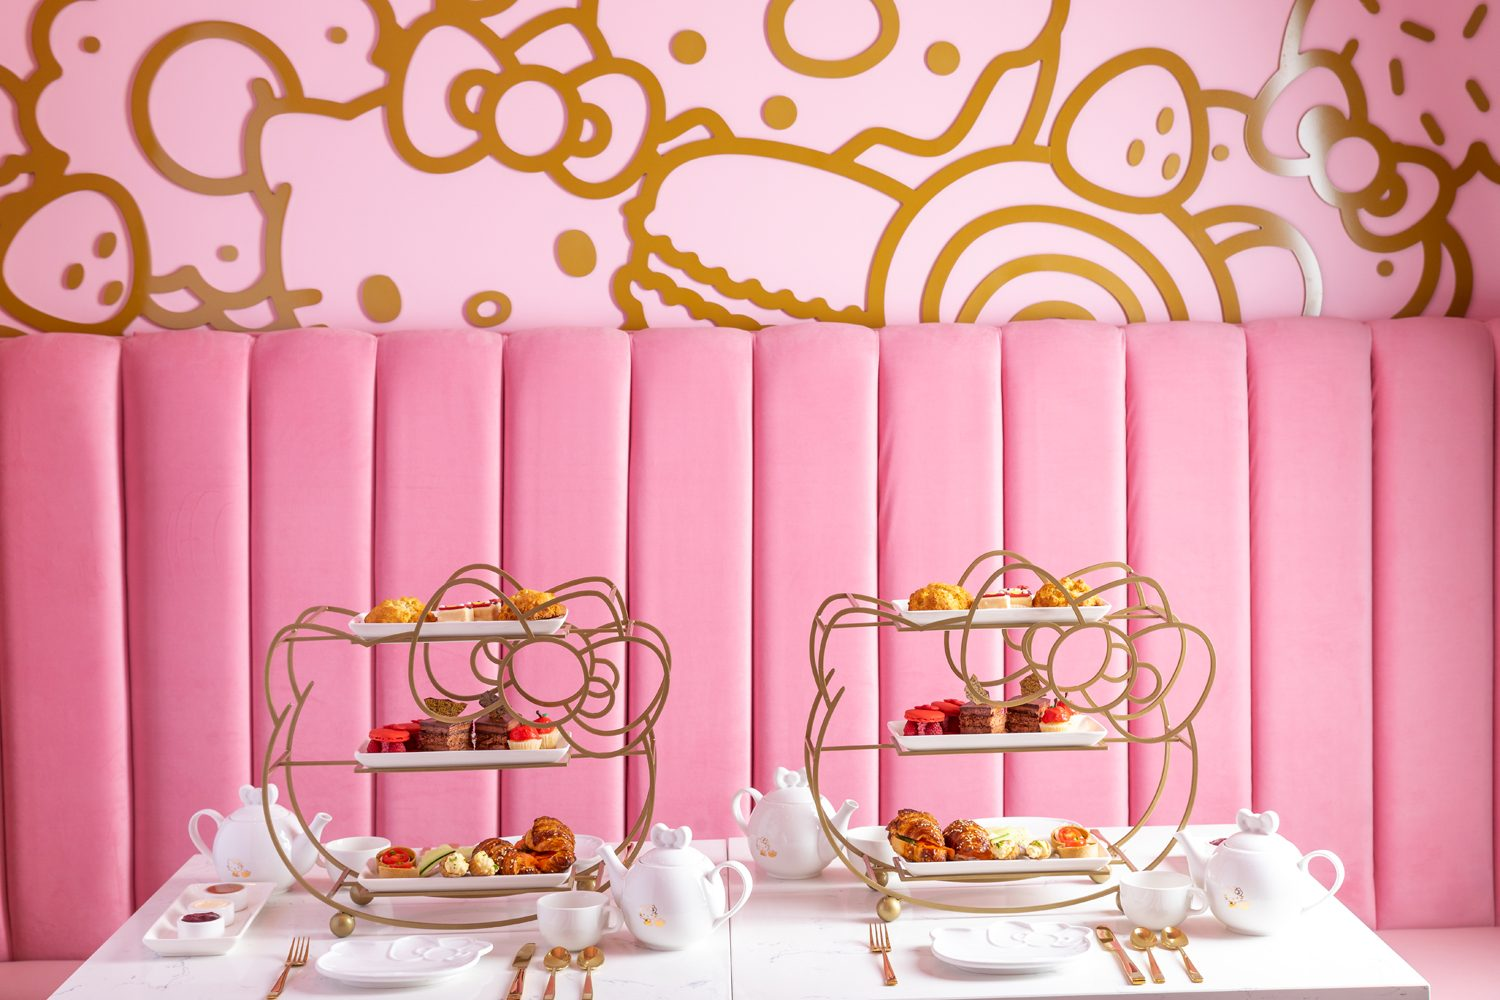 a new hello kitty cafe is opening so your bridal shower plans have changed